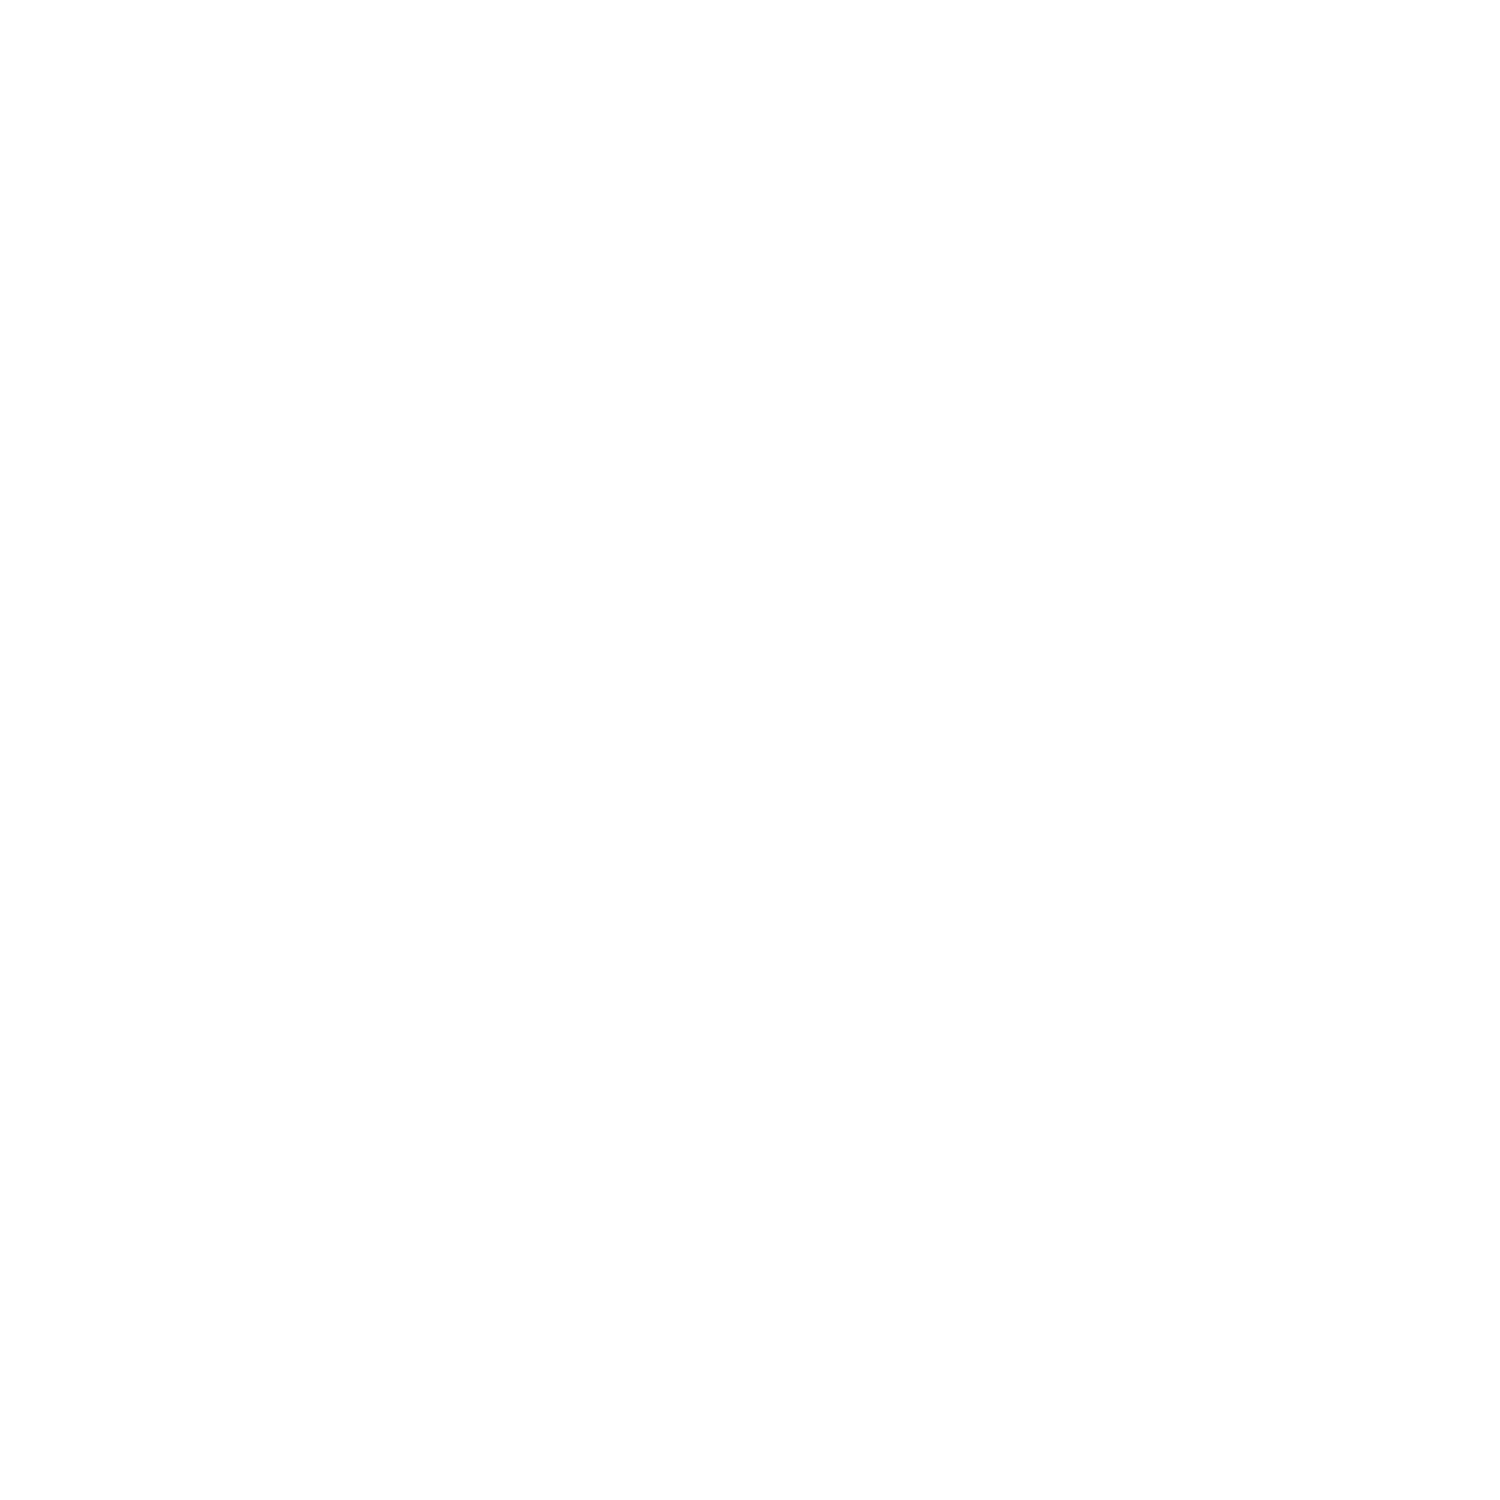 Tough On Fridays